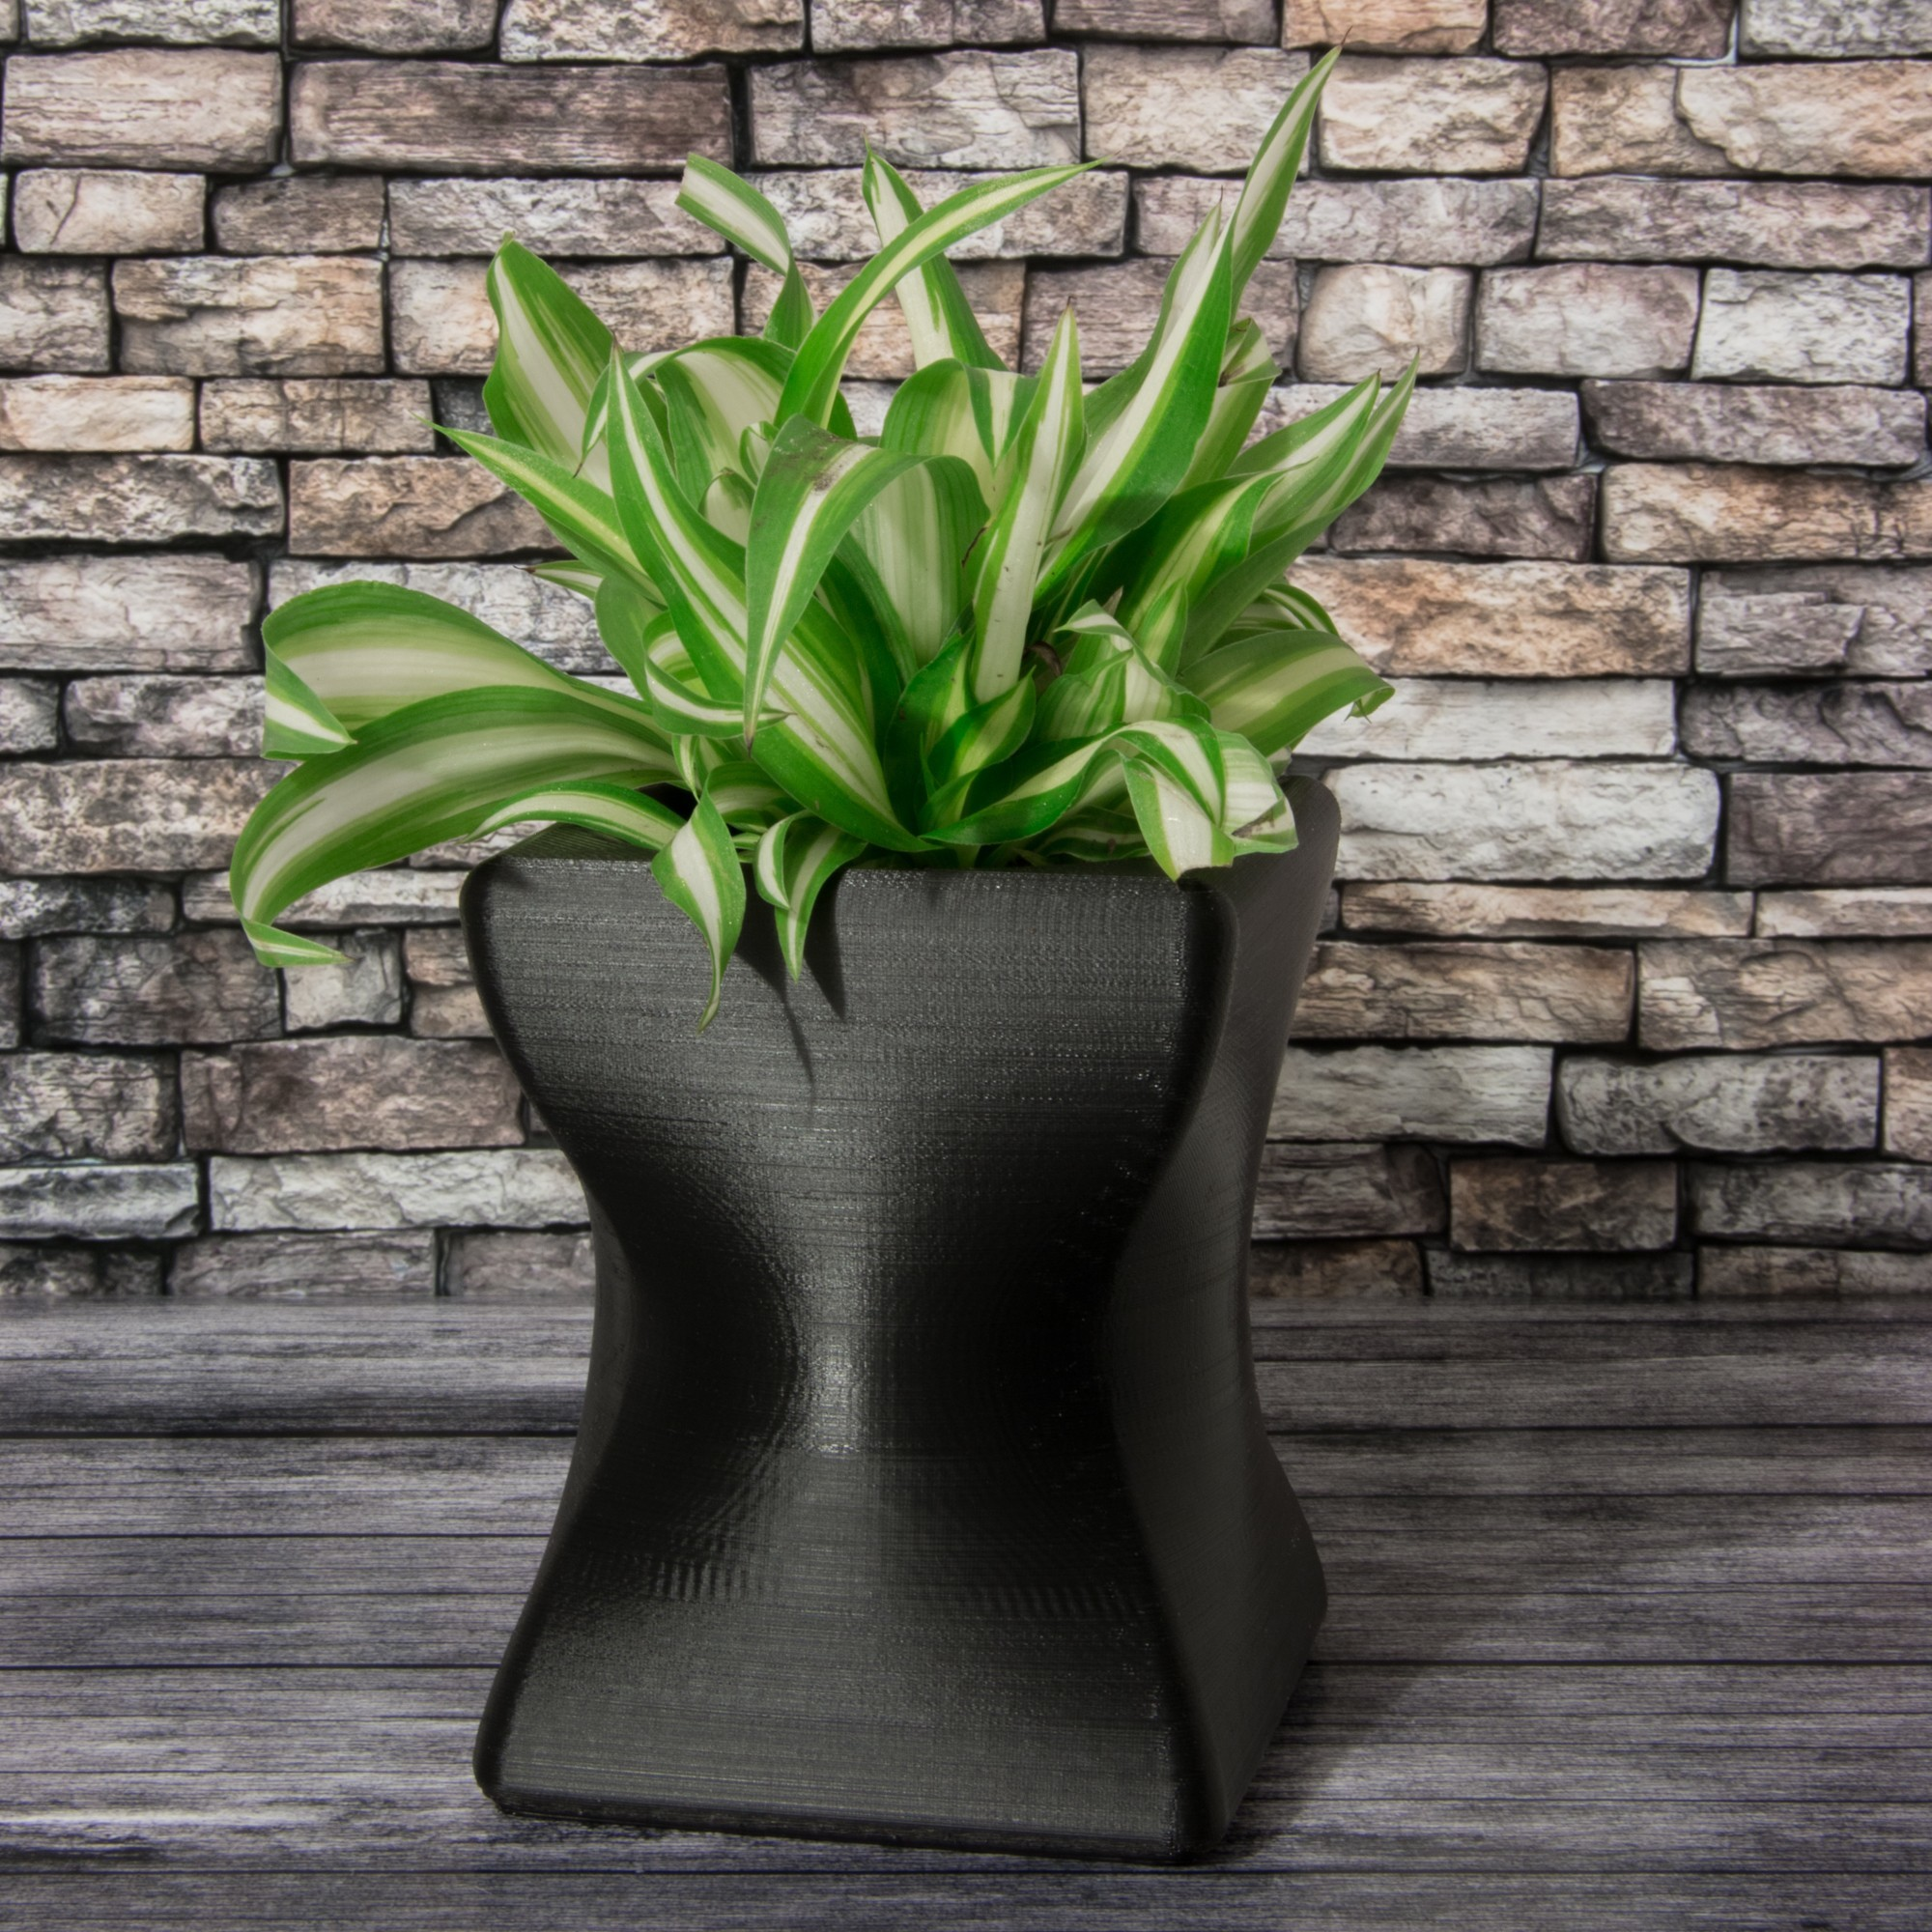 IMG_9702.jpg Download free STL file Small curved planter • 3D printer object, Jakwit